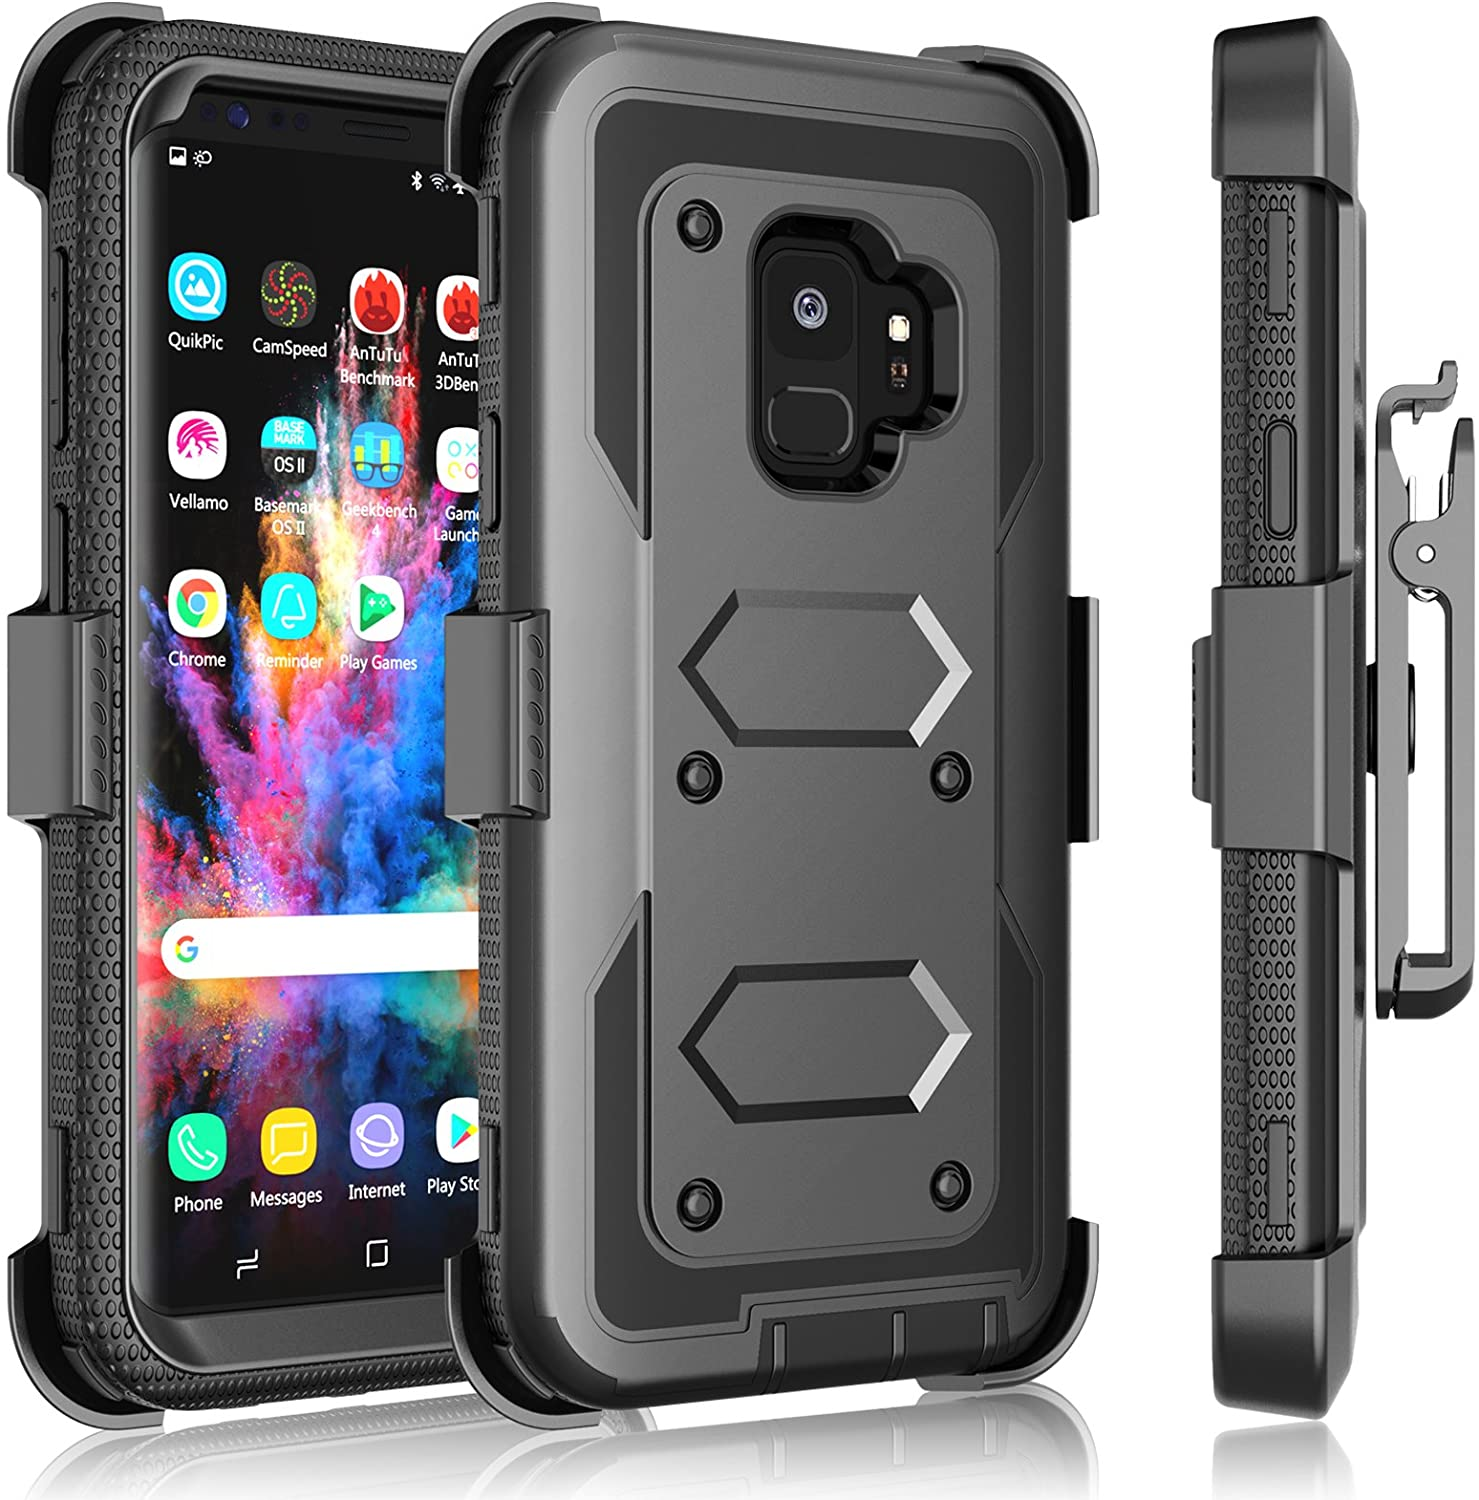 Galaxy S9 Plus Case, Samsung Galaxy S9 Plus Holster Clip, Tekcoo [Tshell] Shock Absorbing [Coal Black] Secure Swivel Locking Belt Defender Heavy Full Body Kickstand Carrying Tank Armor Cases Cover